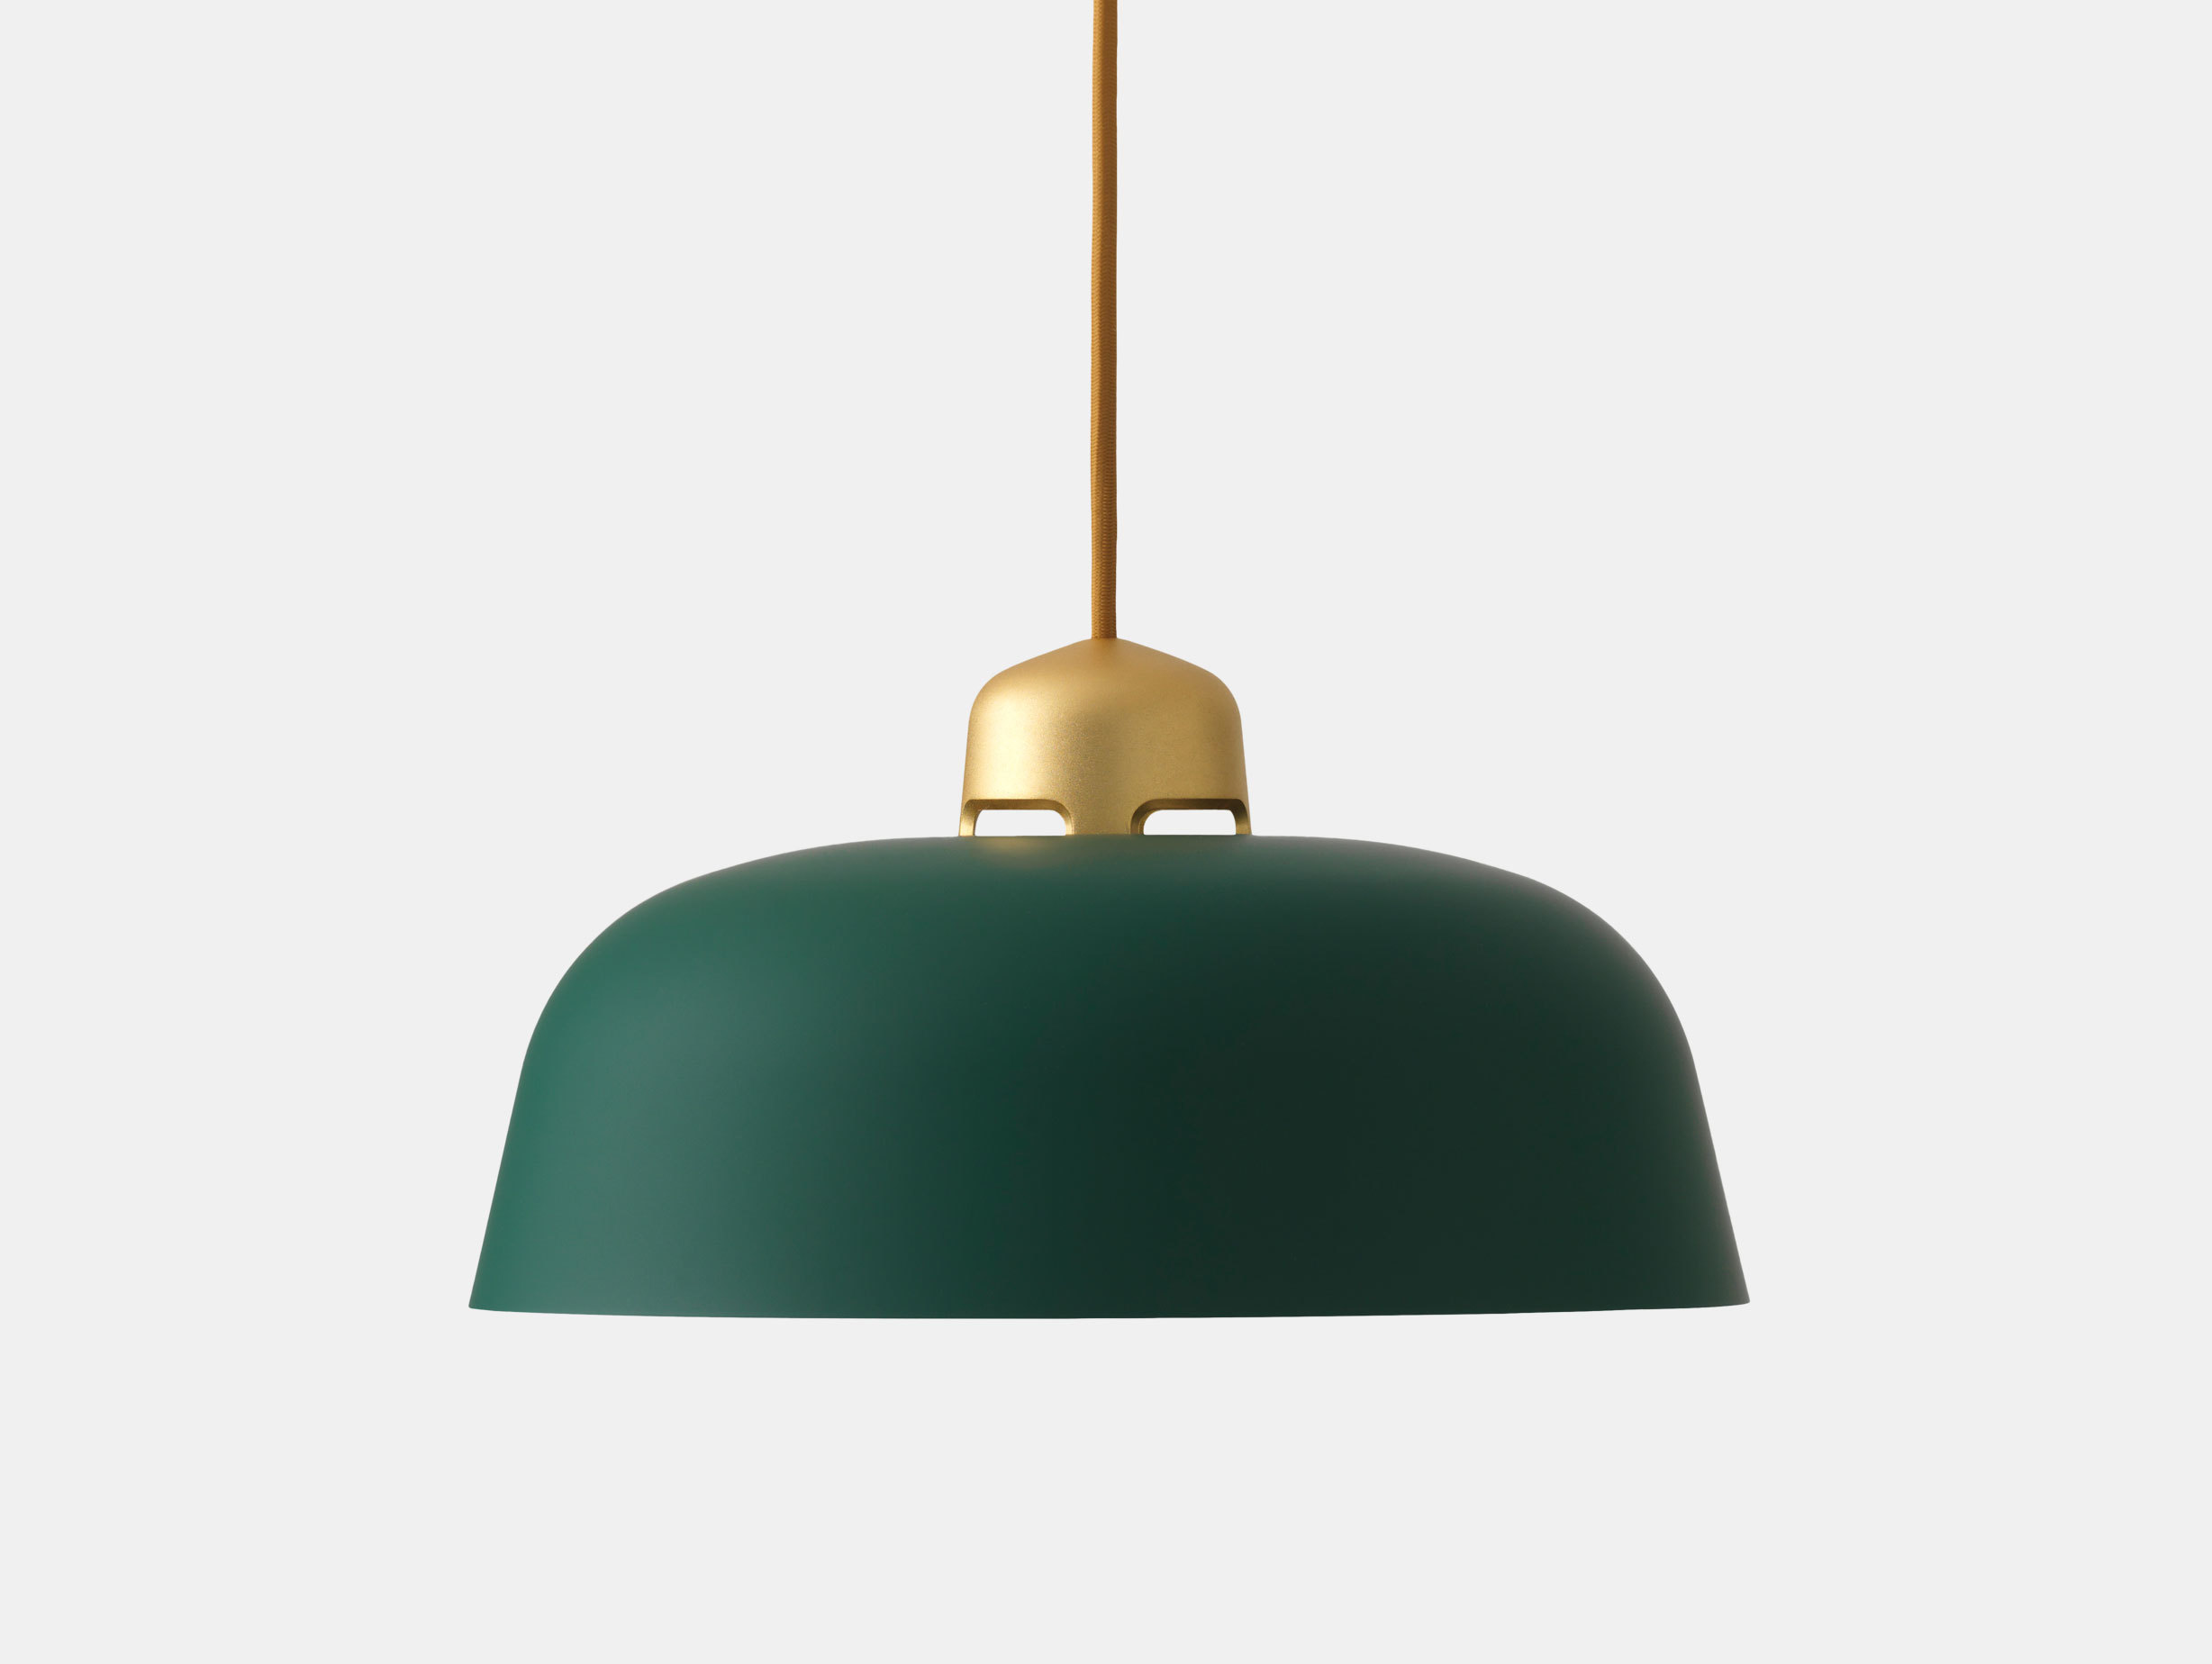 Wastberg W162 Dalston Pendant Light Gold Green Sam Hecht Kim Colin